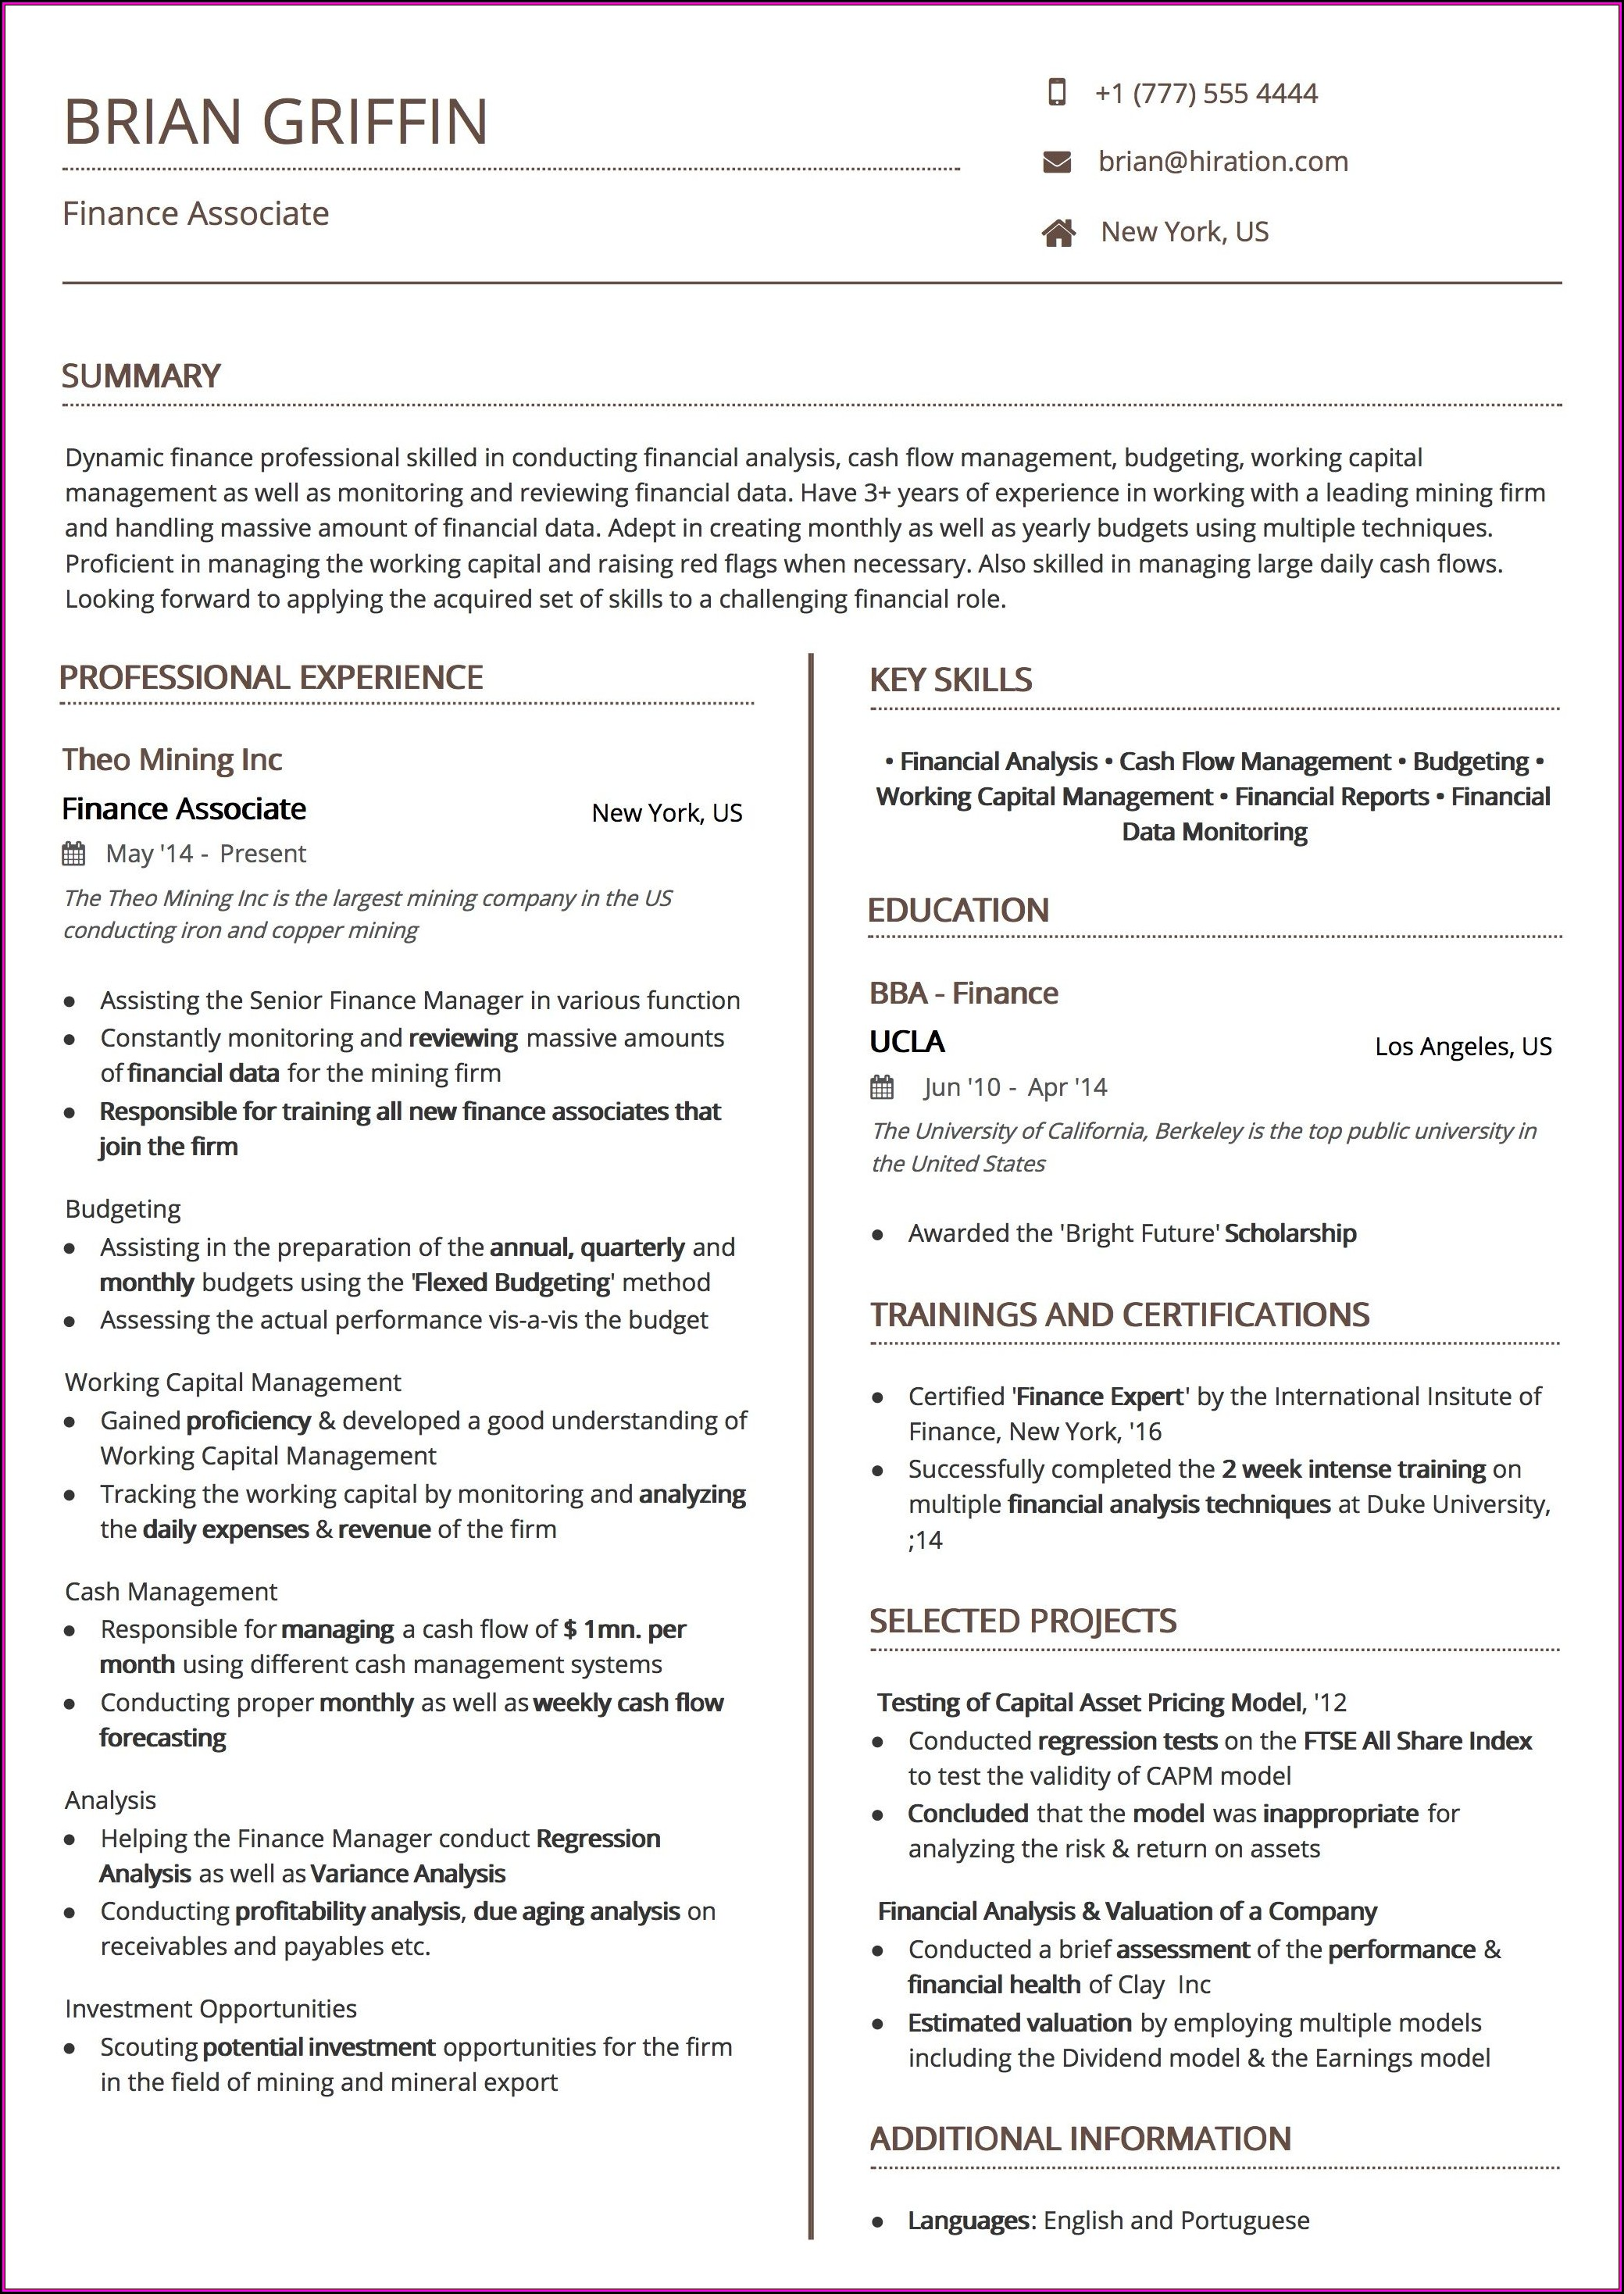 Free Ats Resume Template 2019